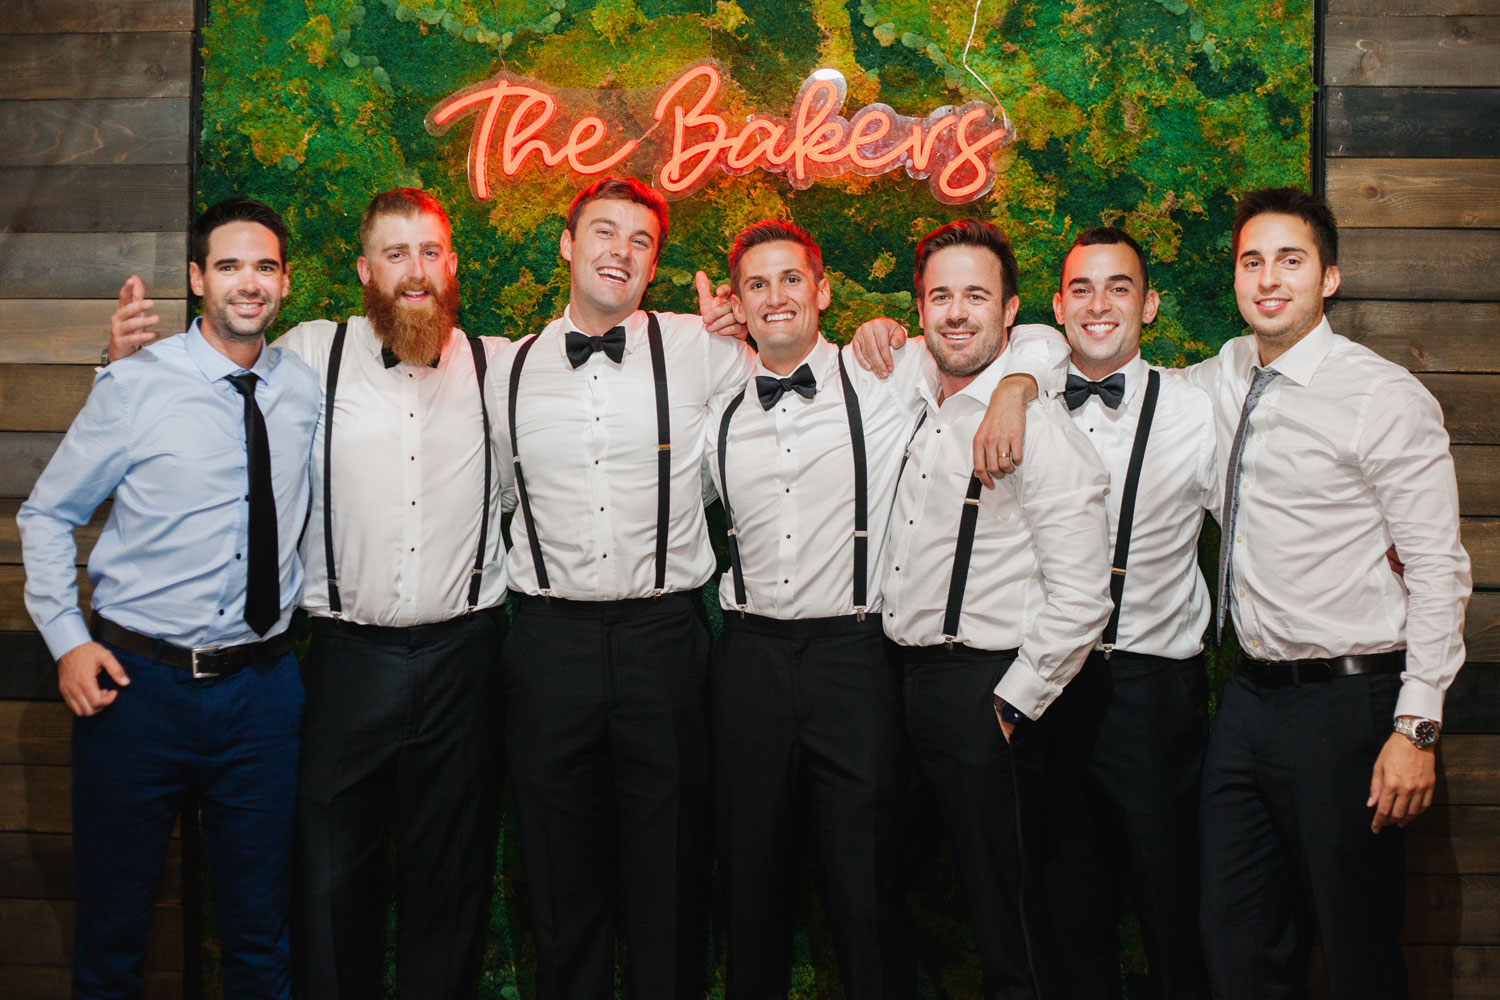 neon sign wedding ideas groom groomsmen in front of neon signage